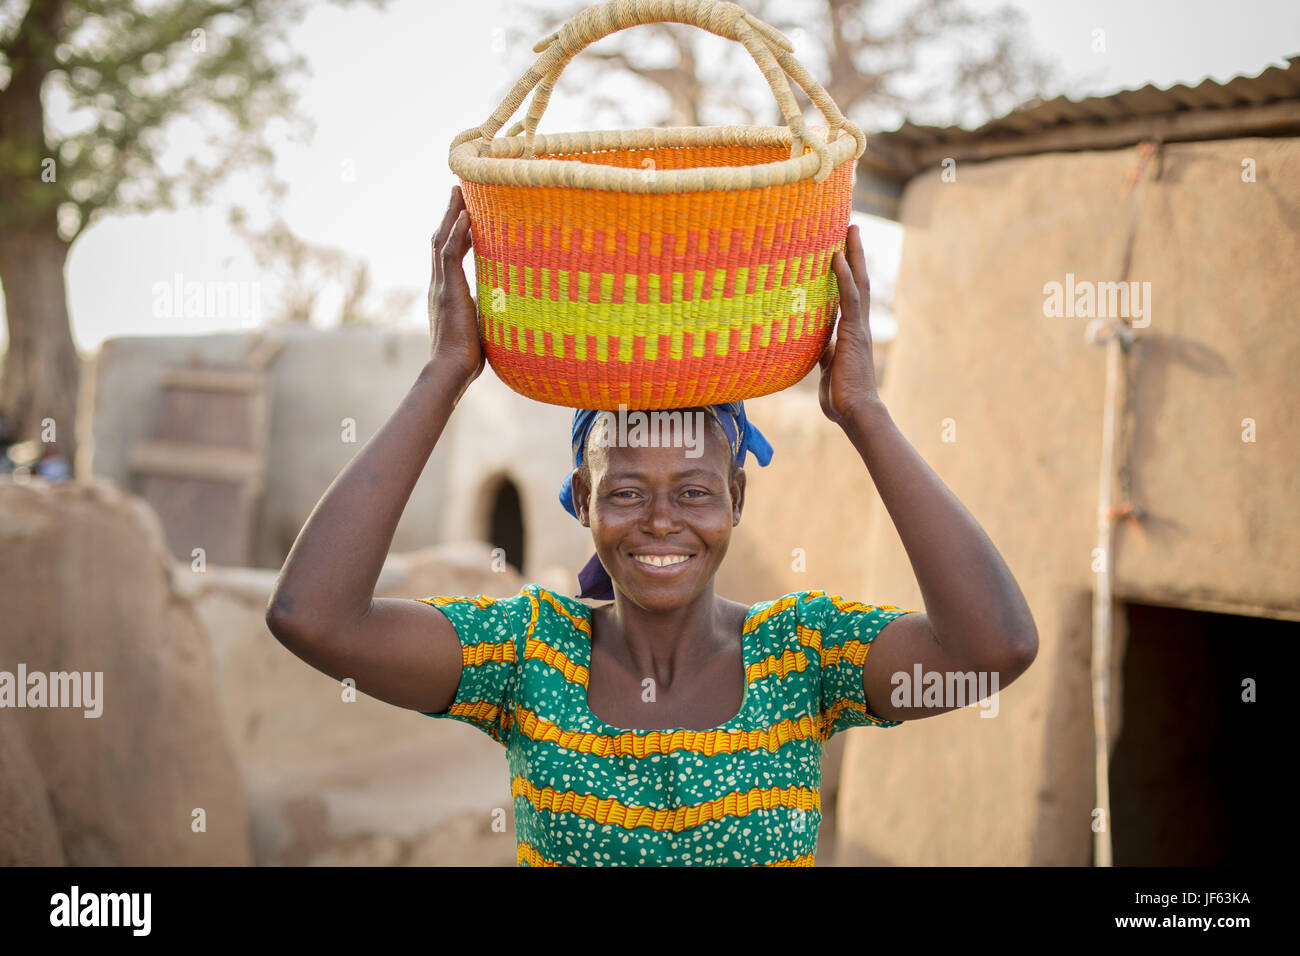 A woman holds a traditional straw basket in Upper East Region, Ghana. - Stock Image